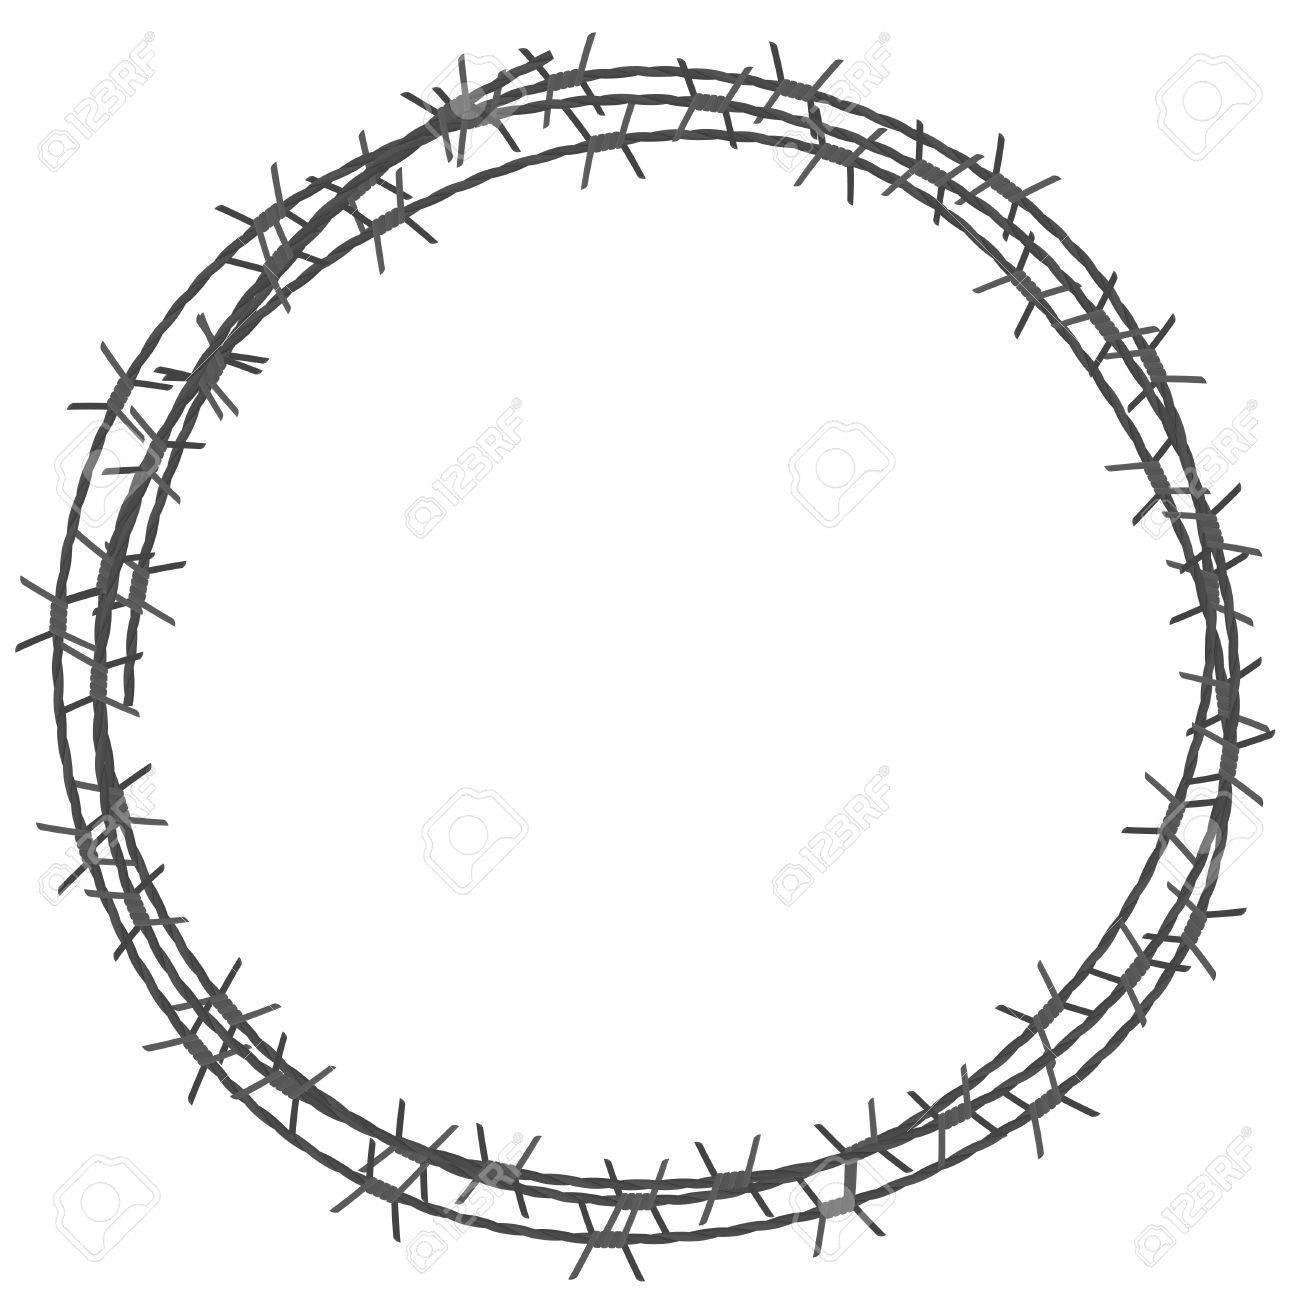 Barbed wire circle border » Clipart Portal.